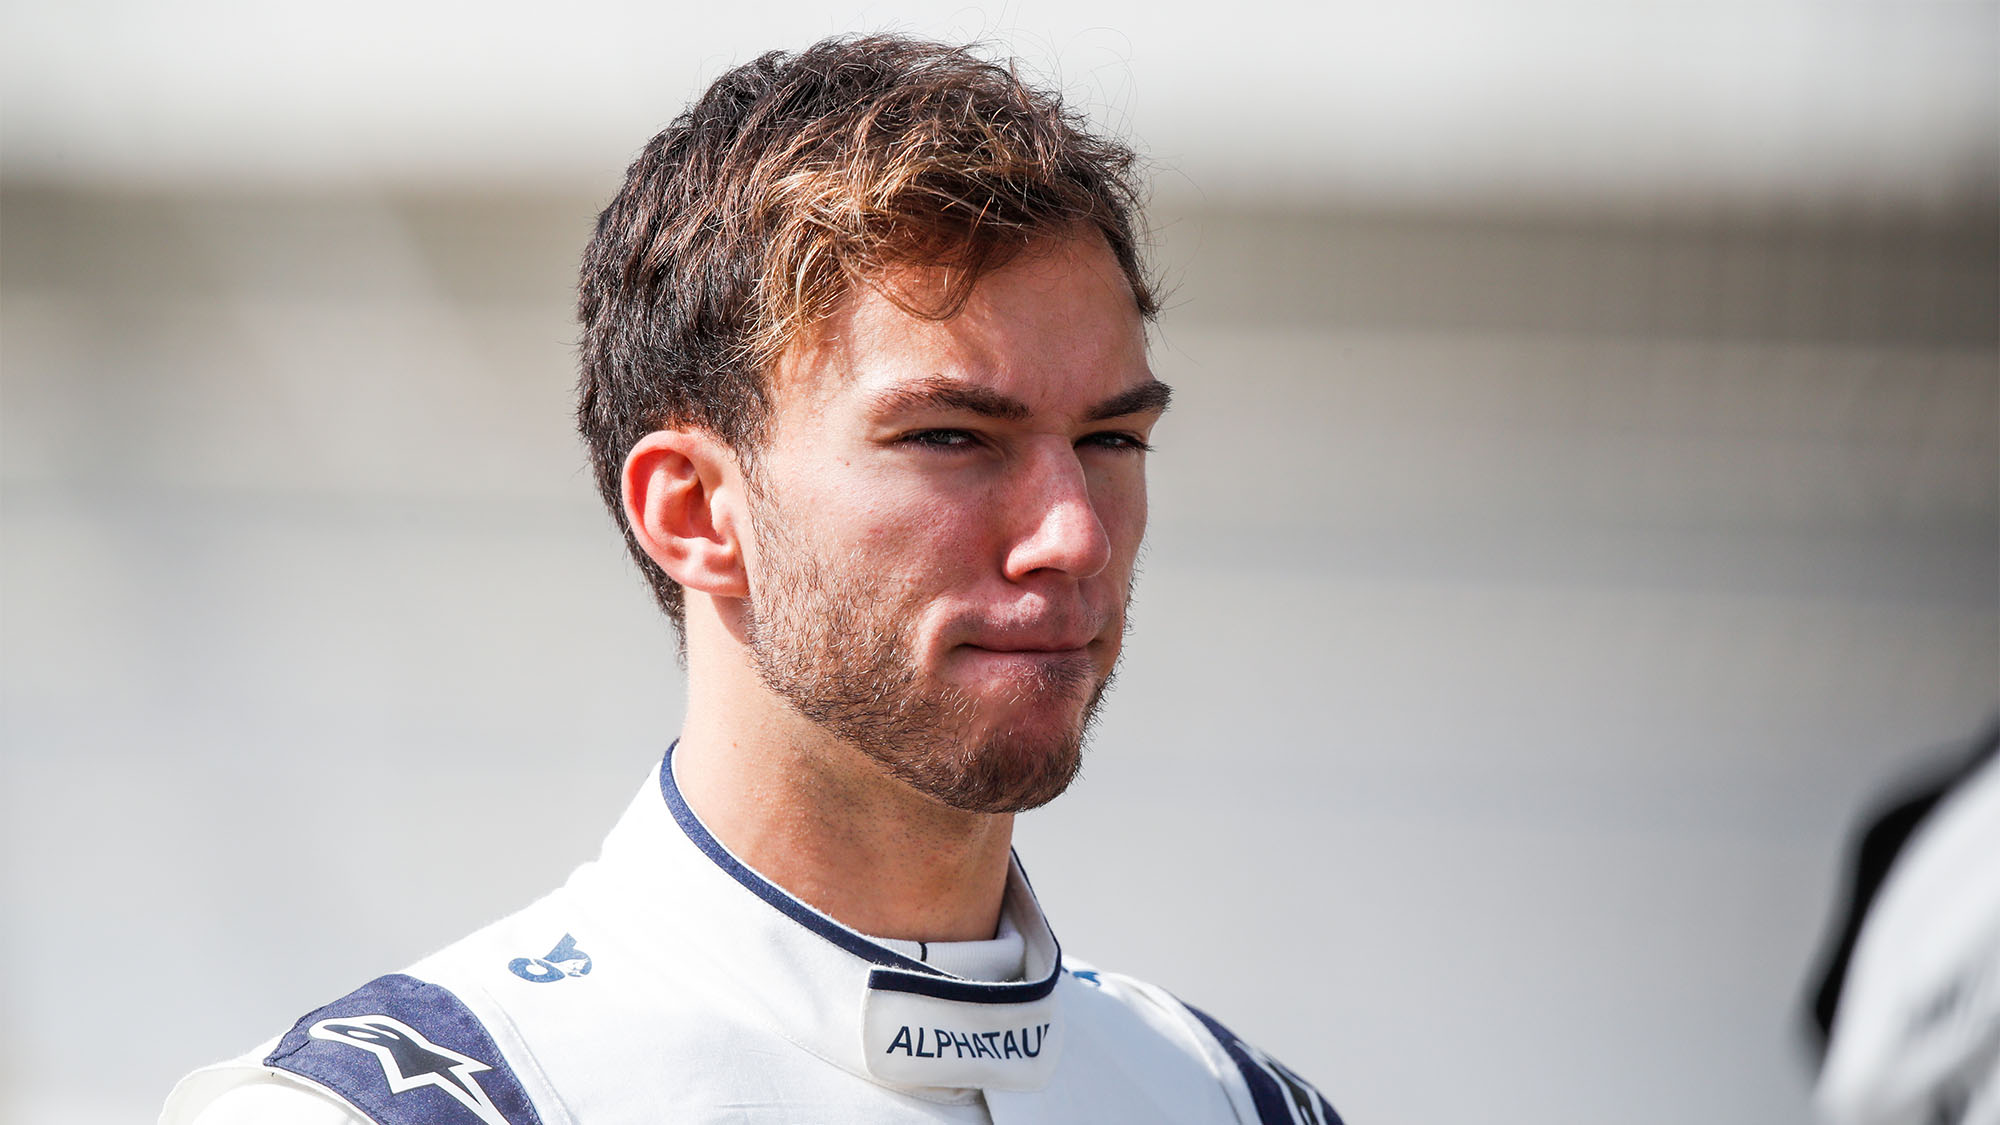 GASLY Pierre (fra), Scuderia AlphaTauri Honda AT02, portrait during the Formula 1 Pre-season testing 2020 from March 12 to 14, 2021 on the Bahrain International Circuit, in Sakhir, Bahrain - Photo Florent Gooden / DPPI